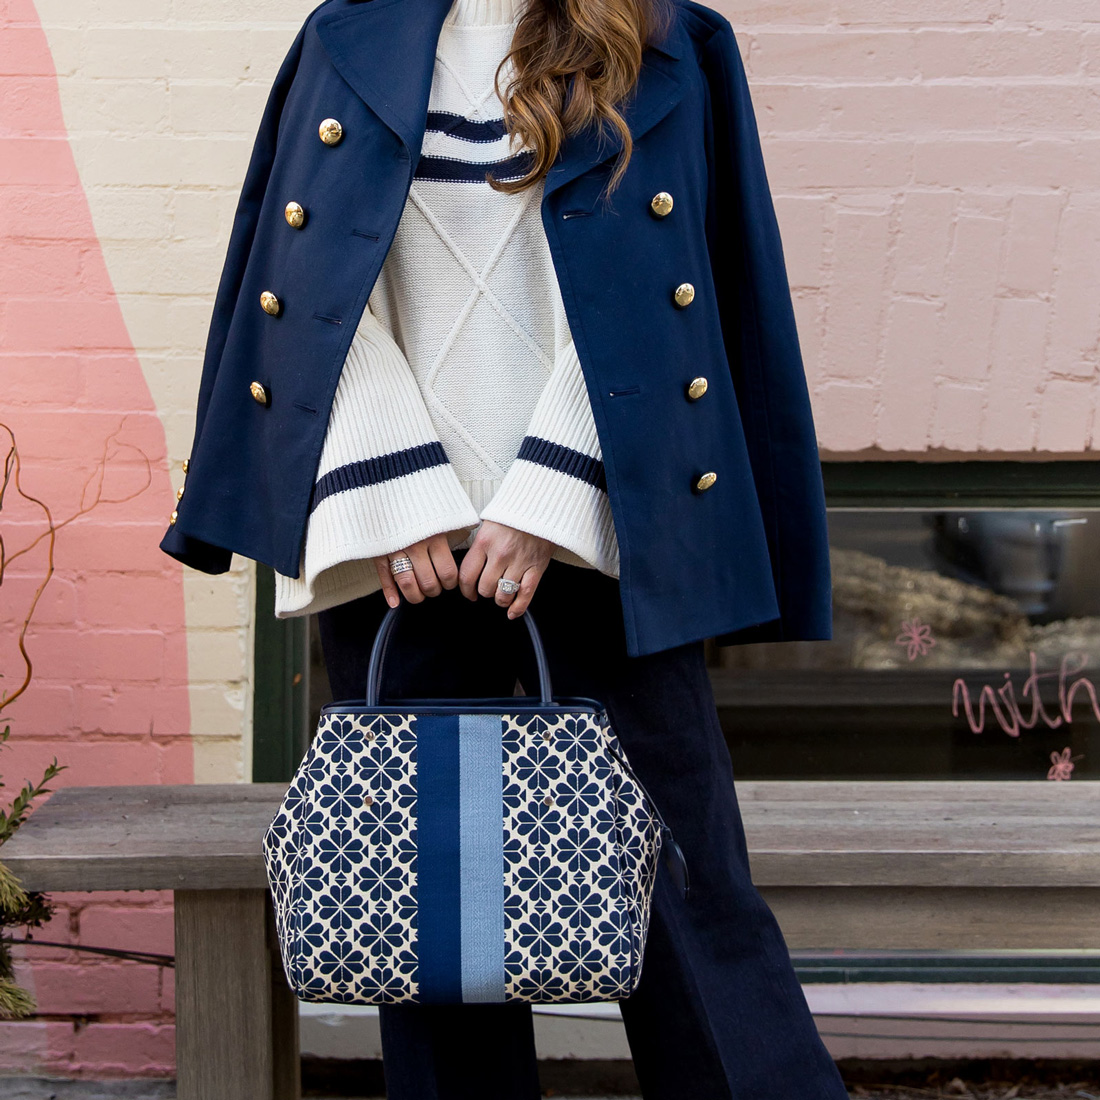 kate spade new york nautical outfit